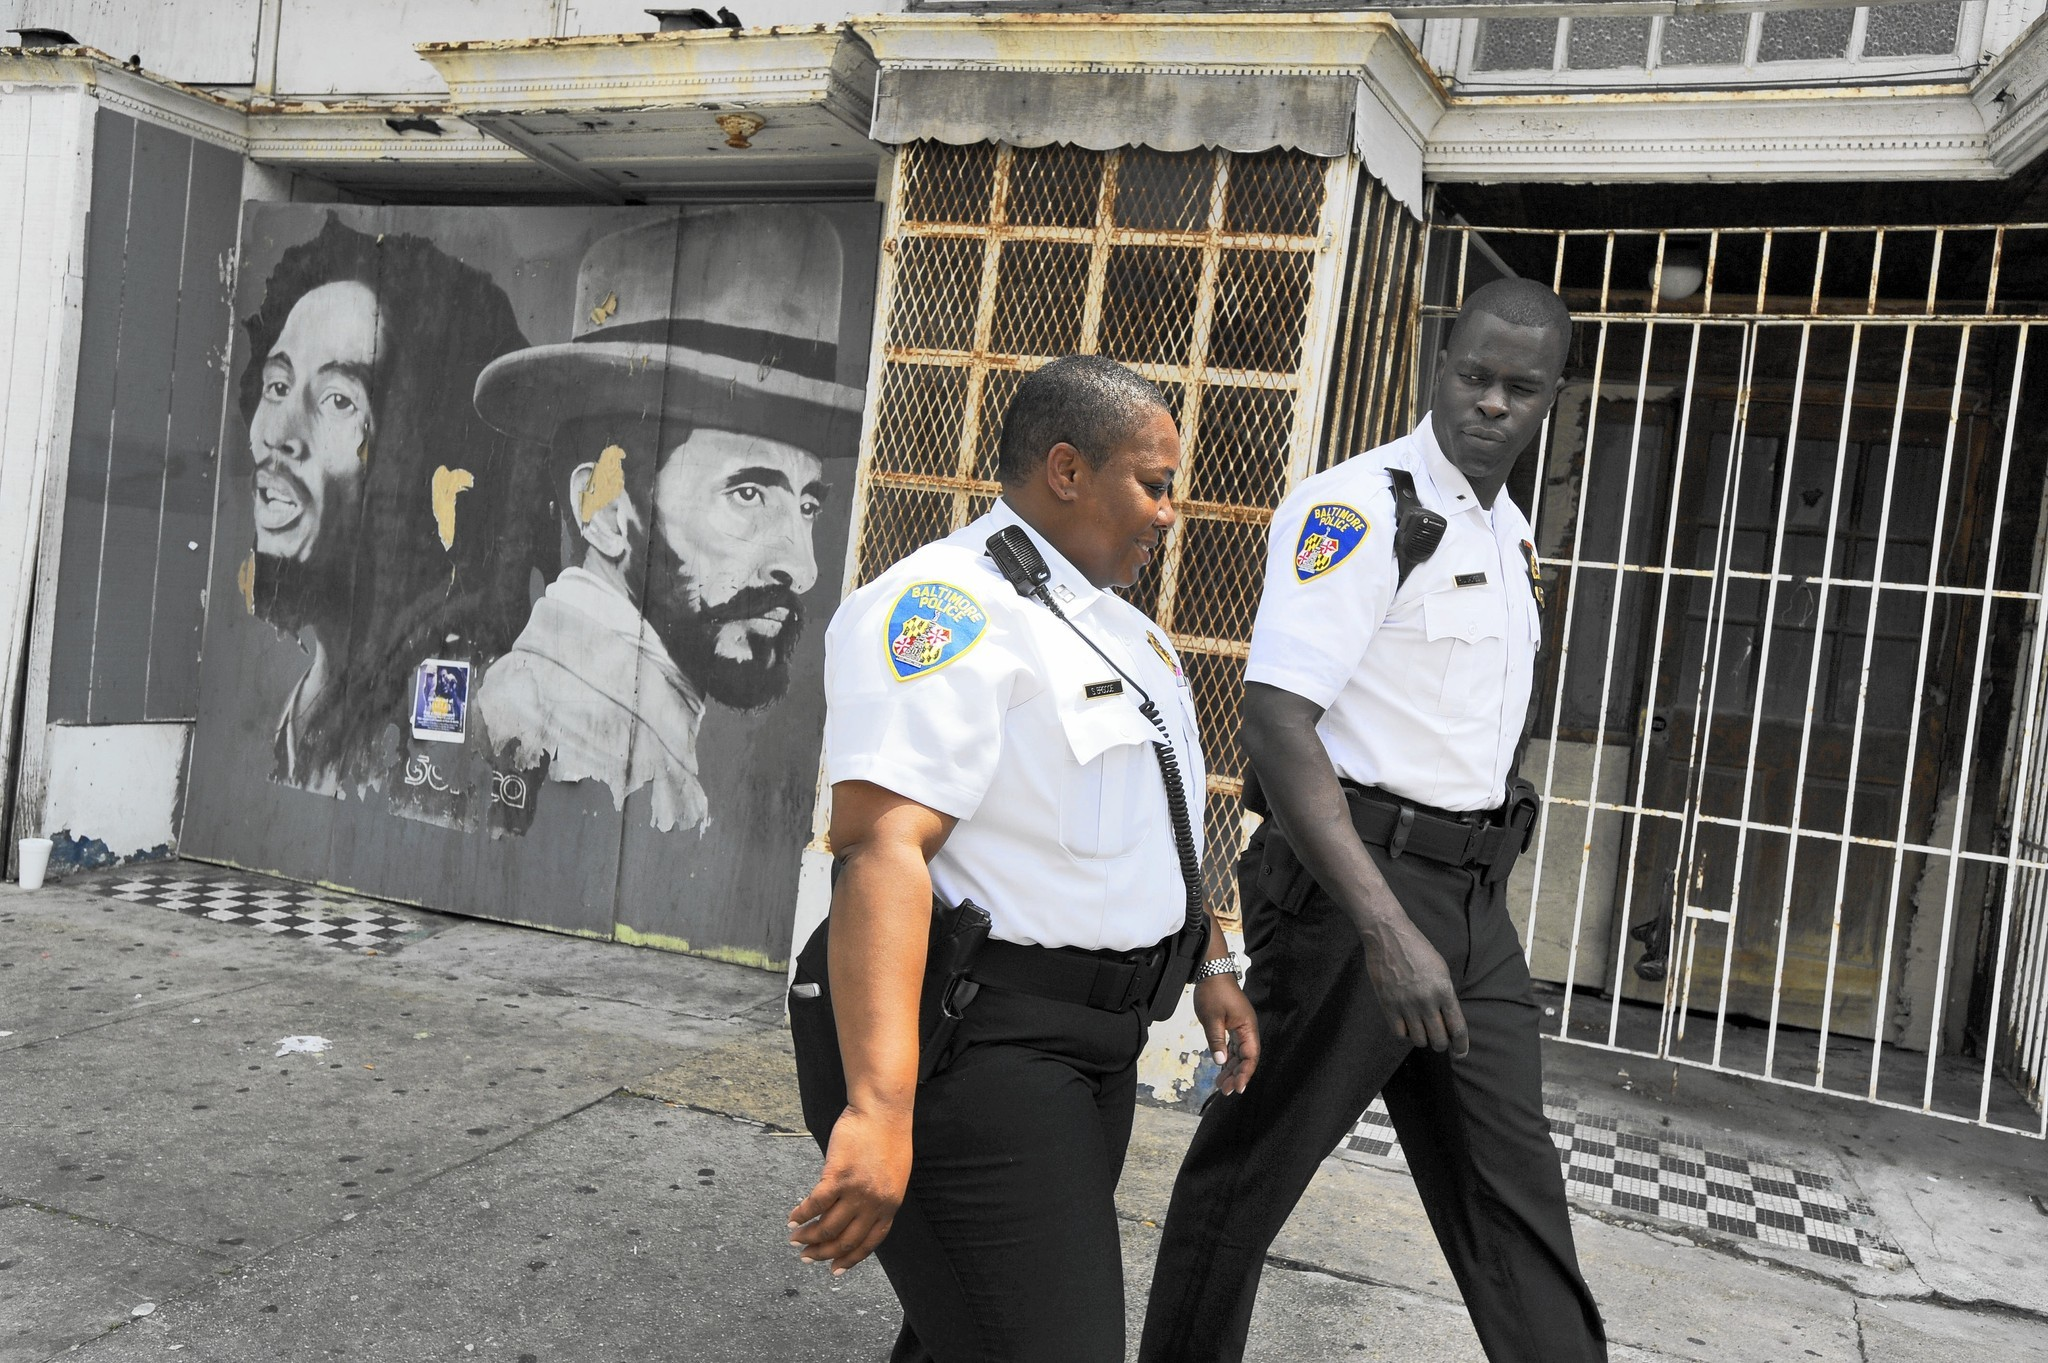 Fox Ford Chicago >> Baltimore's Western District police commanders seek calm after Freddie Gray death - Baltimore Sun